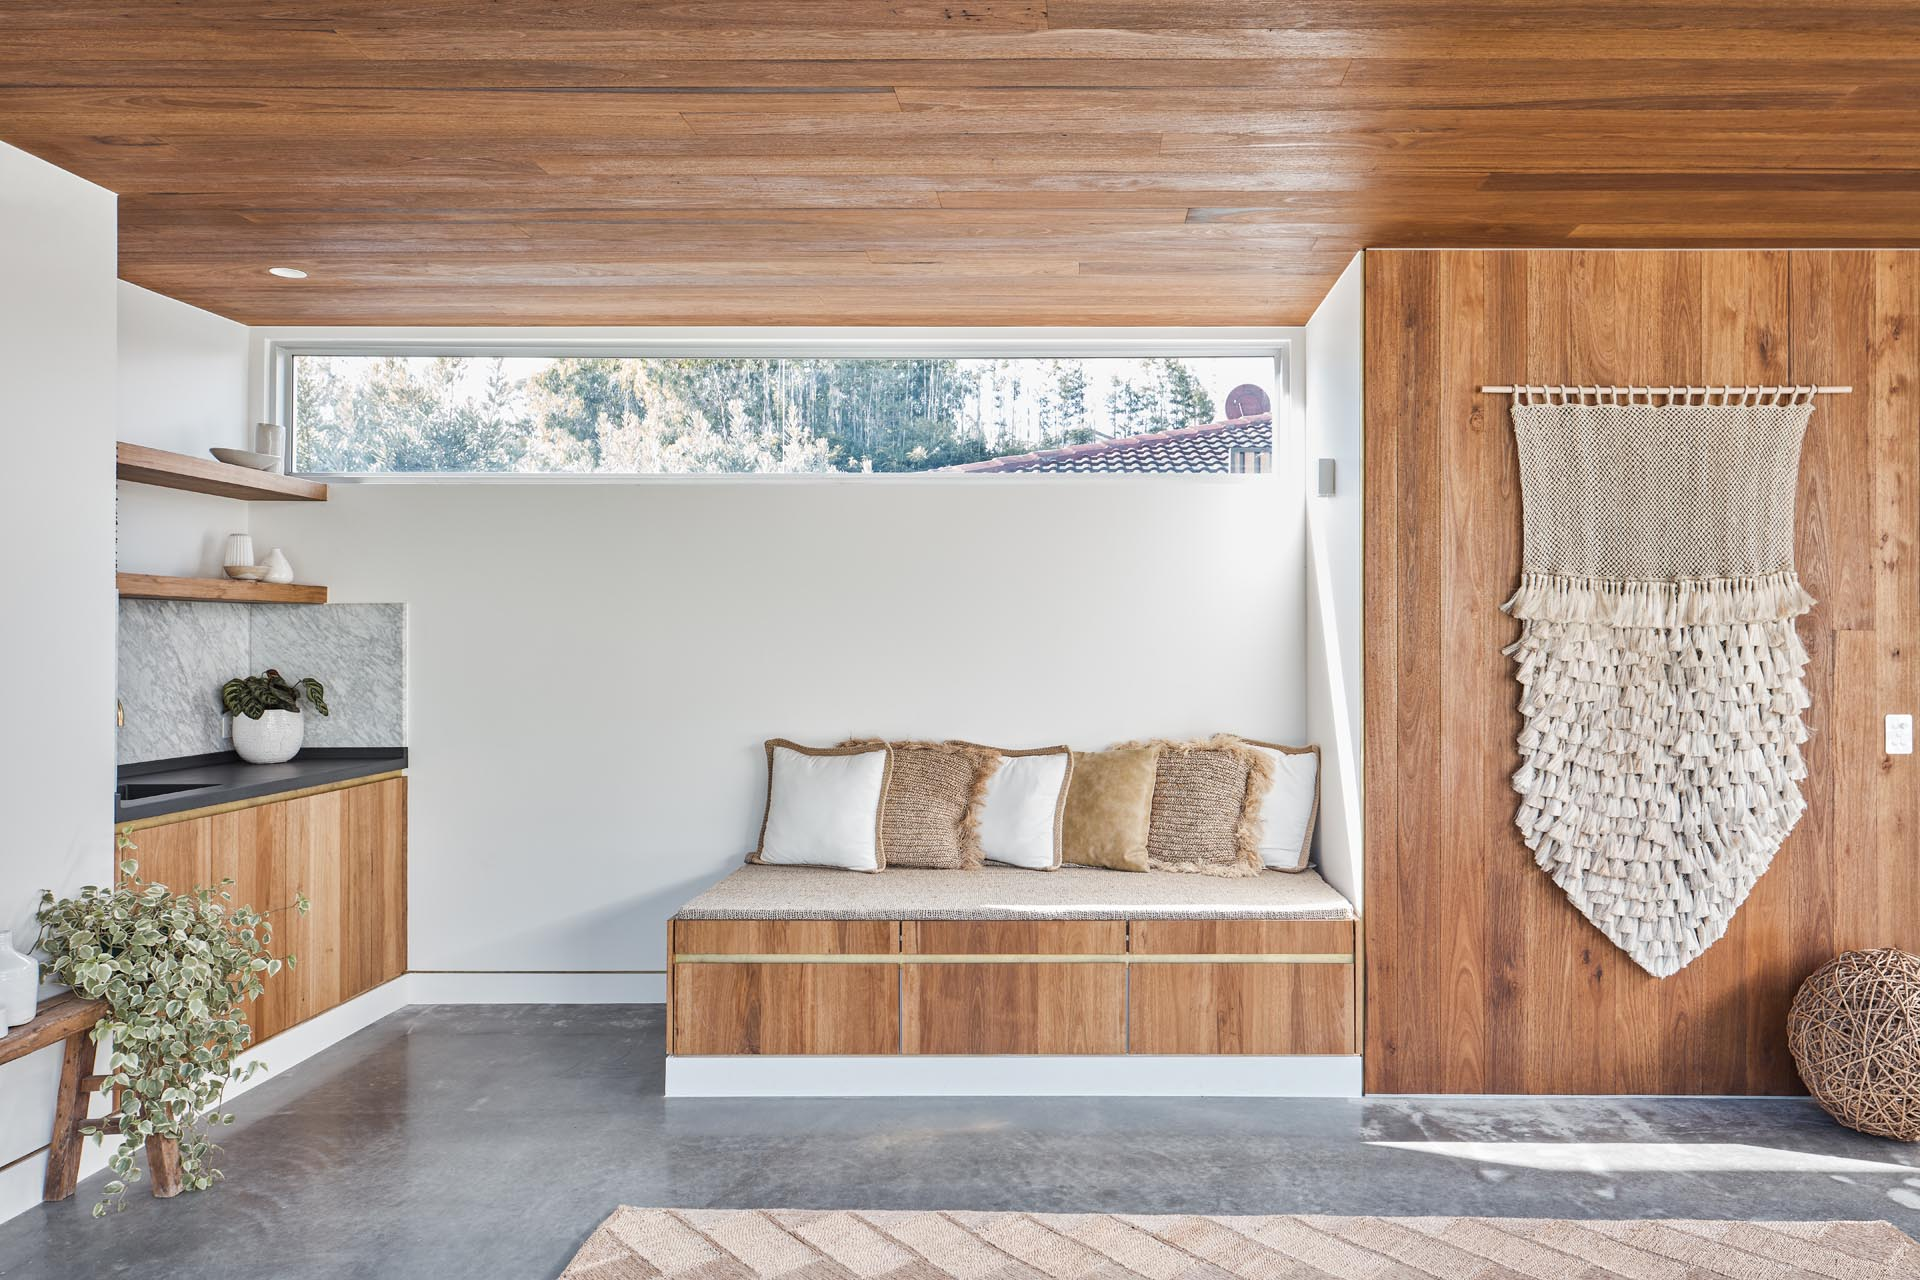 With mid-century modern influences, the sliding glass walls of this backyard studio, seamlessly open the interior spaces of the studio to the backyard. Inside, there's a wood ceiling, polished concrete floors, a small bench, storage, and a kitchenette.